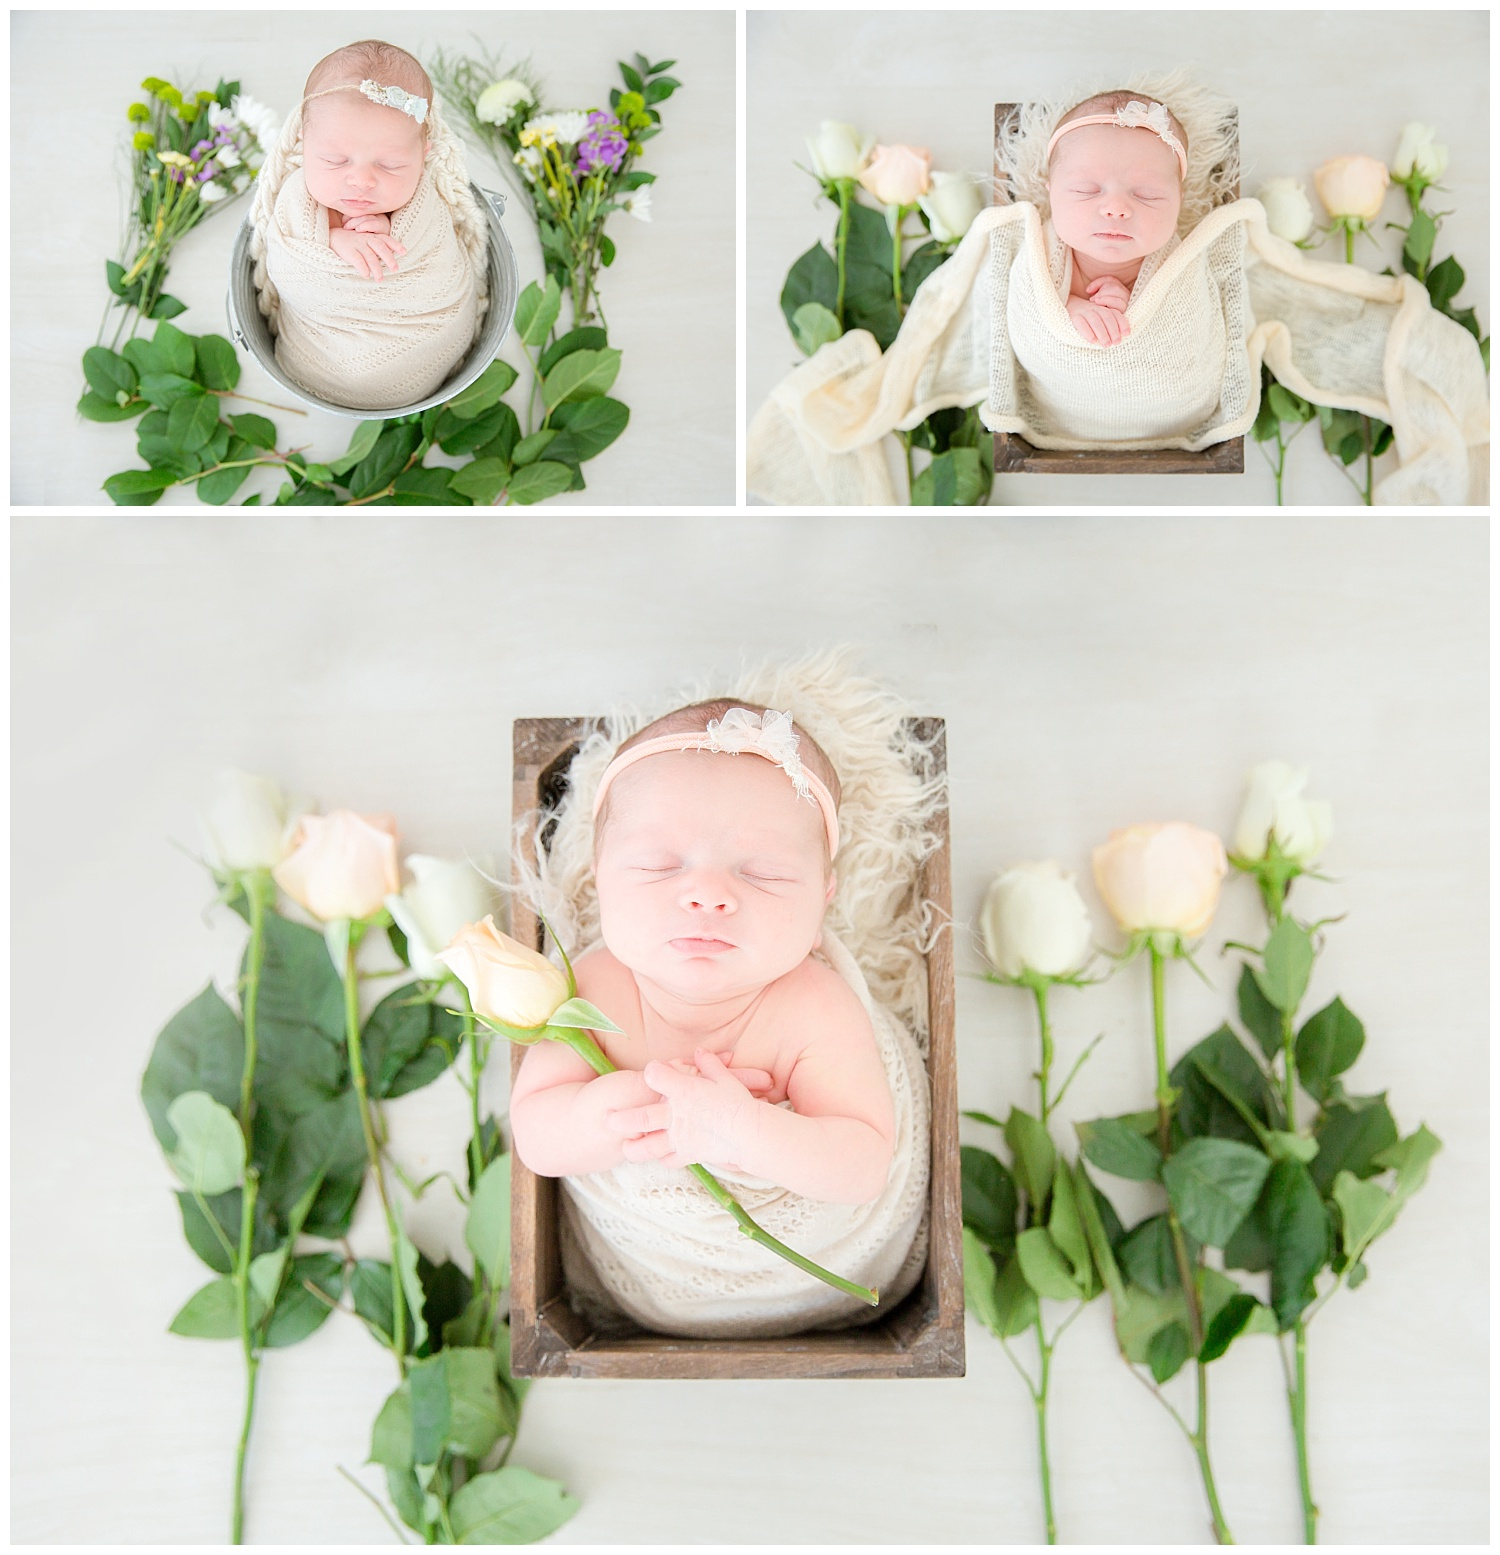 baby surrounded by wild flowers and roses for her newborn photos in burlington new jersey